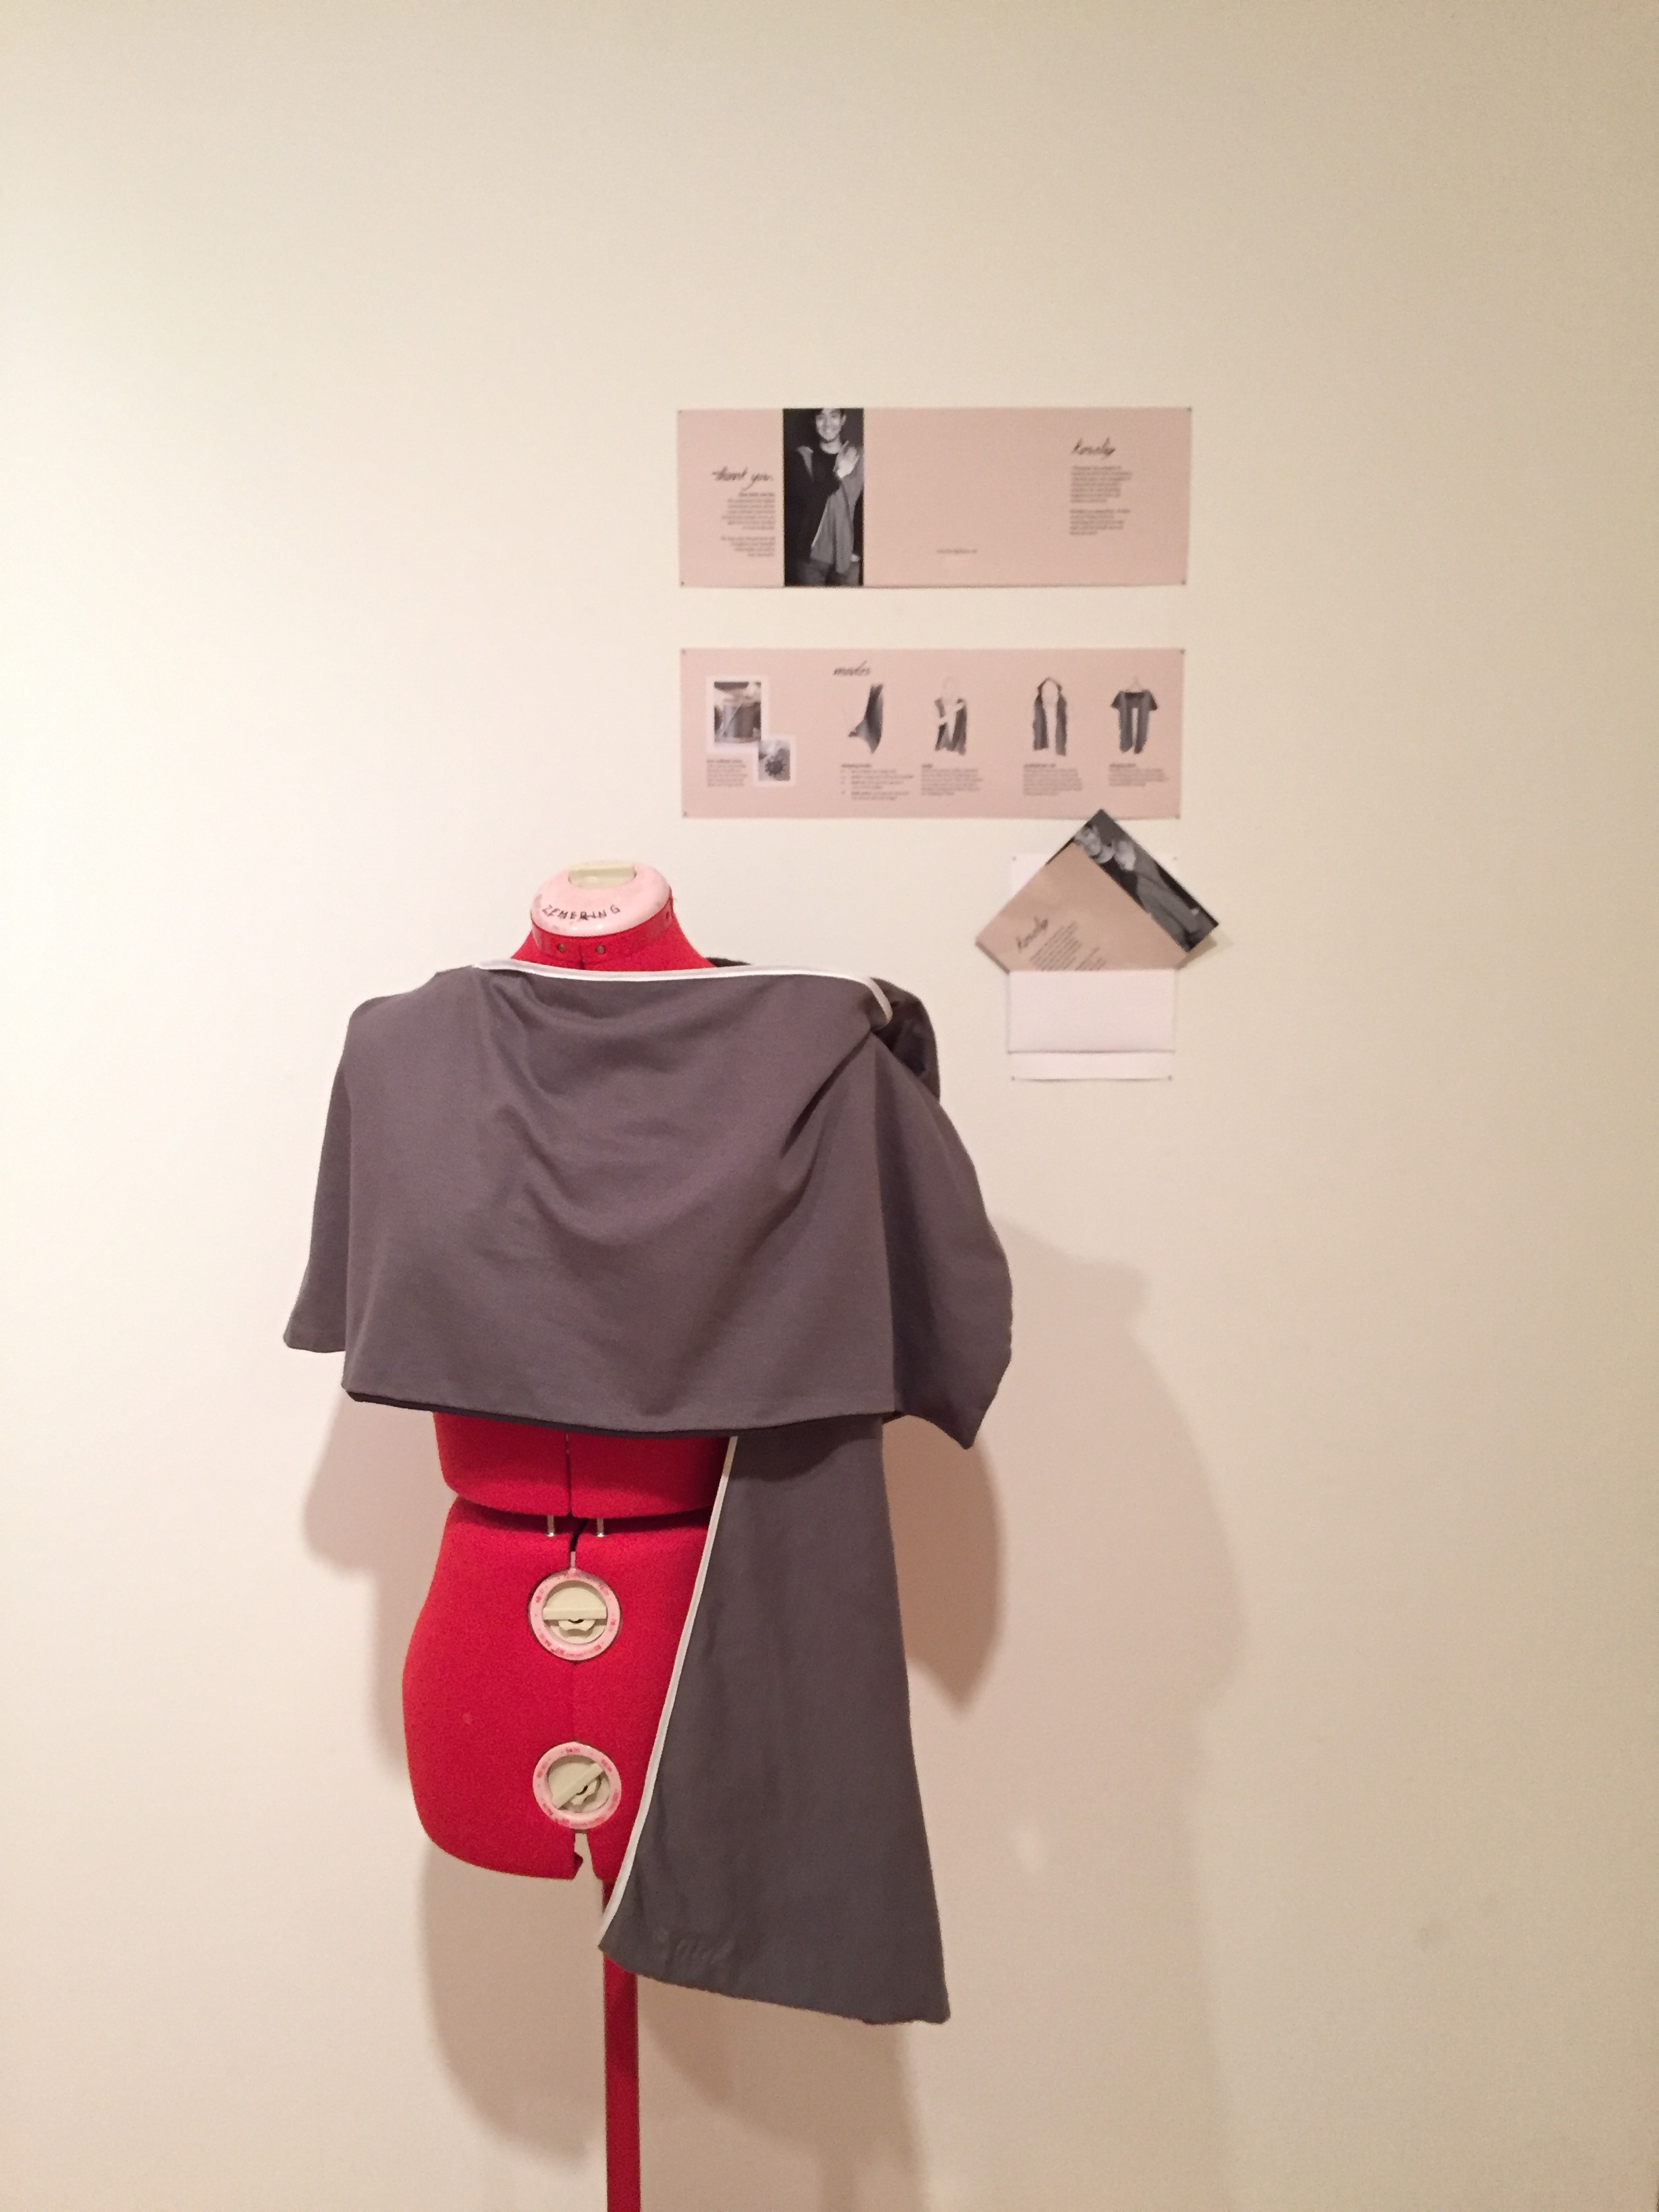 Our piece was featured in our class' Senior Final Show that was set up in the Miller Gallery. We had a working demo session during the reception night, and got a lot of positive and excited feedback about our product!